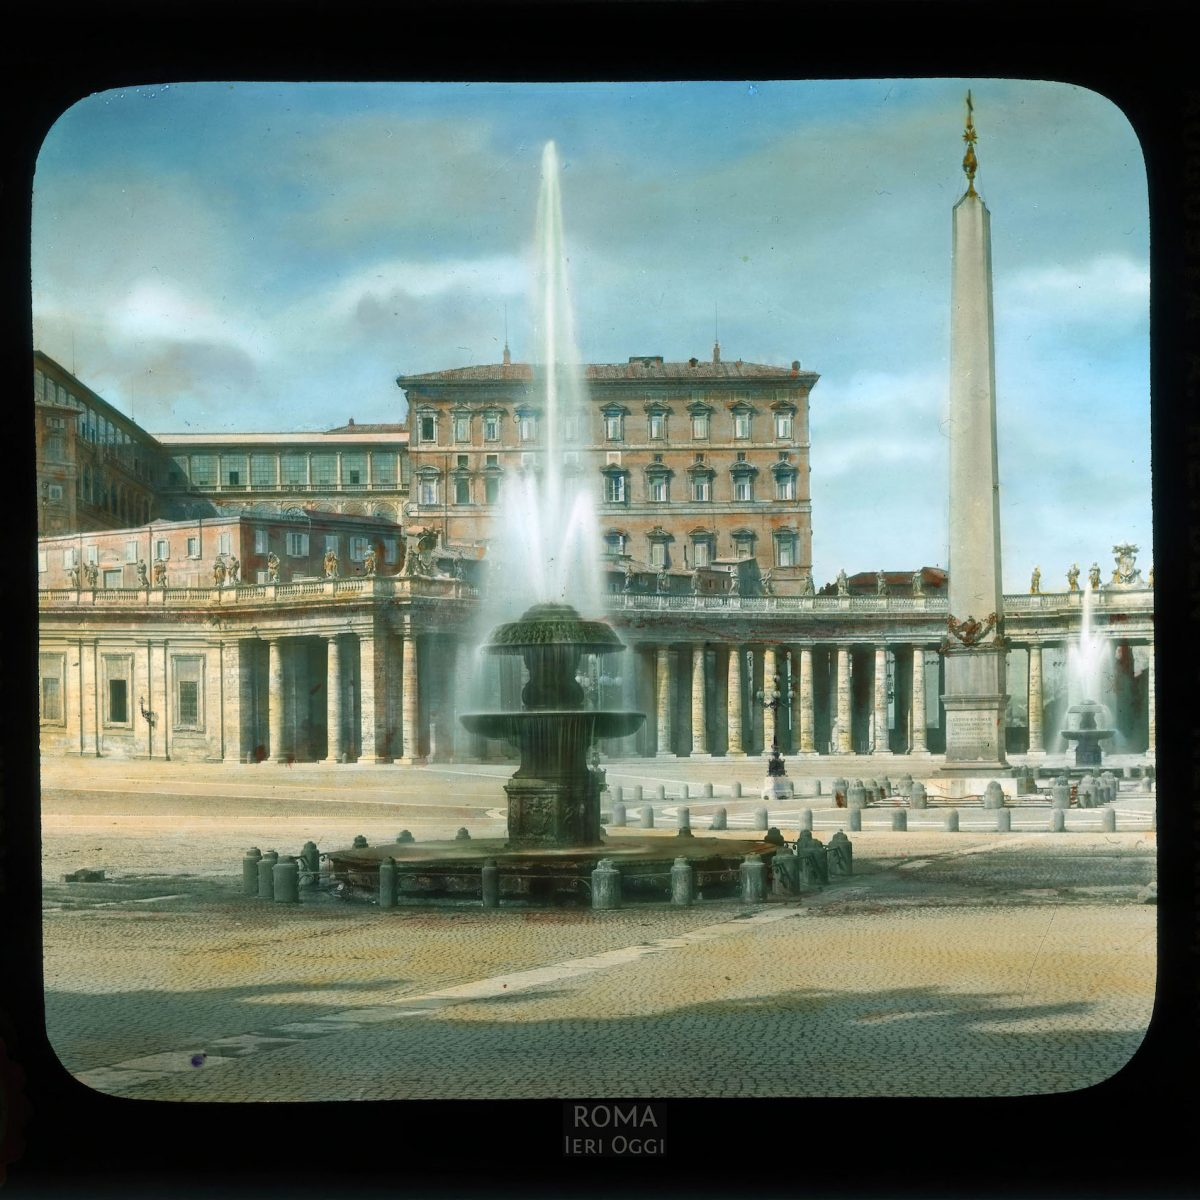 Vatican City. St. Peter's Square: detail of fountains by Maderno and Egyptian obelisk (13th century B.C.E.) View in tinted lantern slide, ca. 1919-1938. The square was designed by Bernini, 1656-1667.